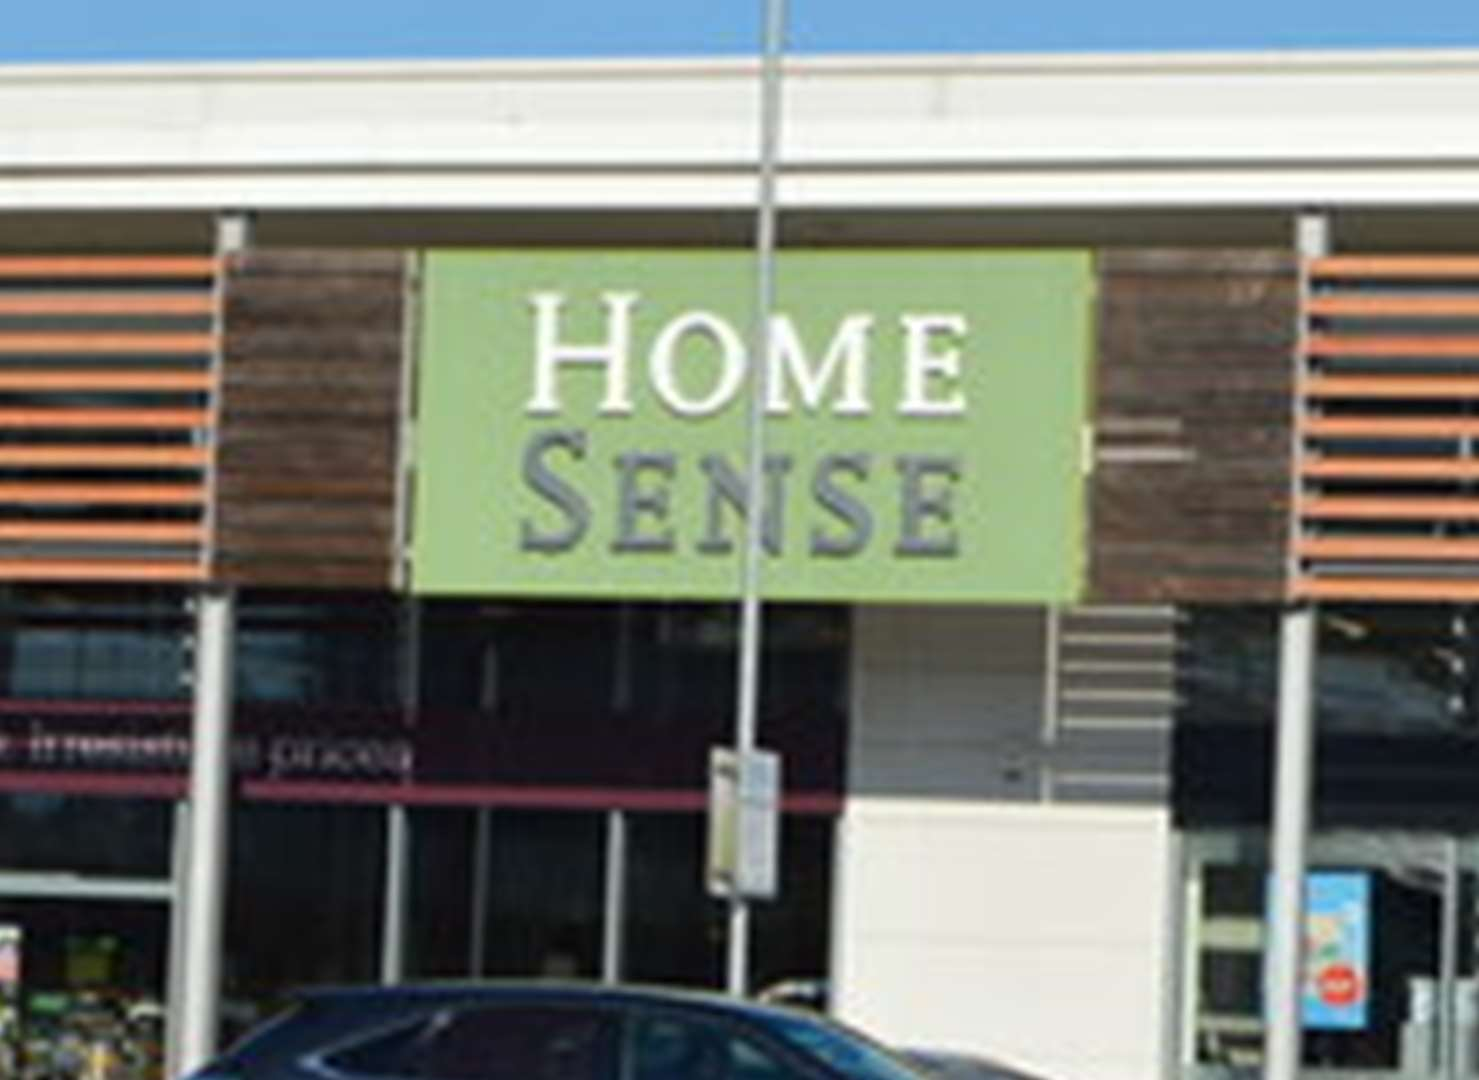 Homesense store to create 25 jobs